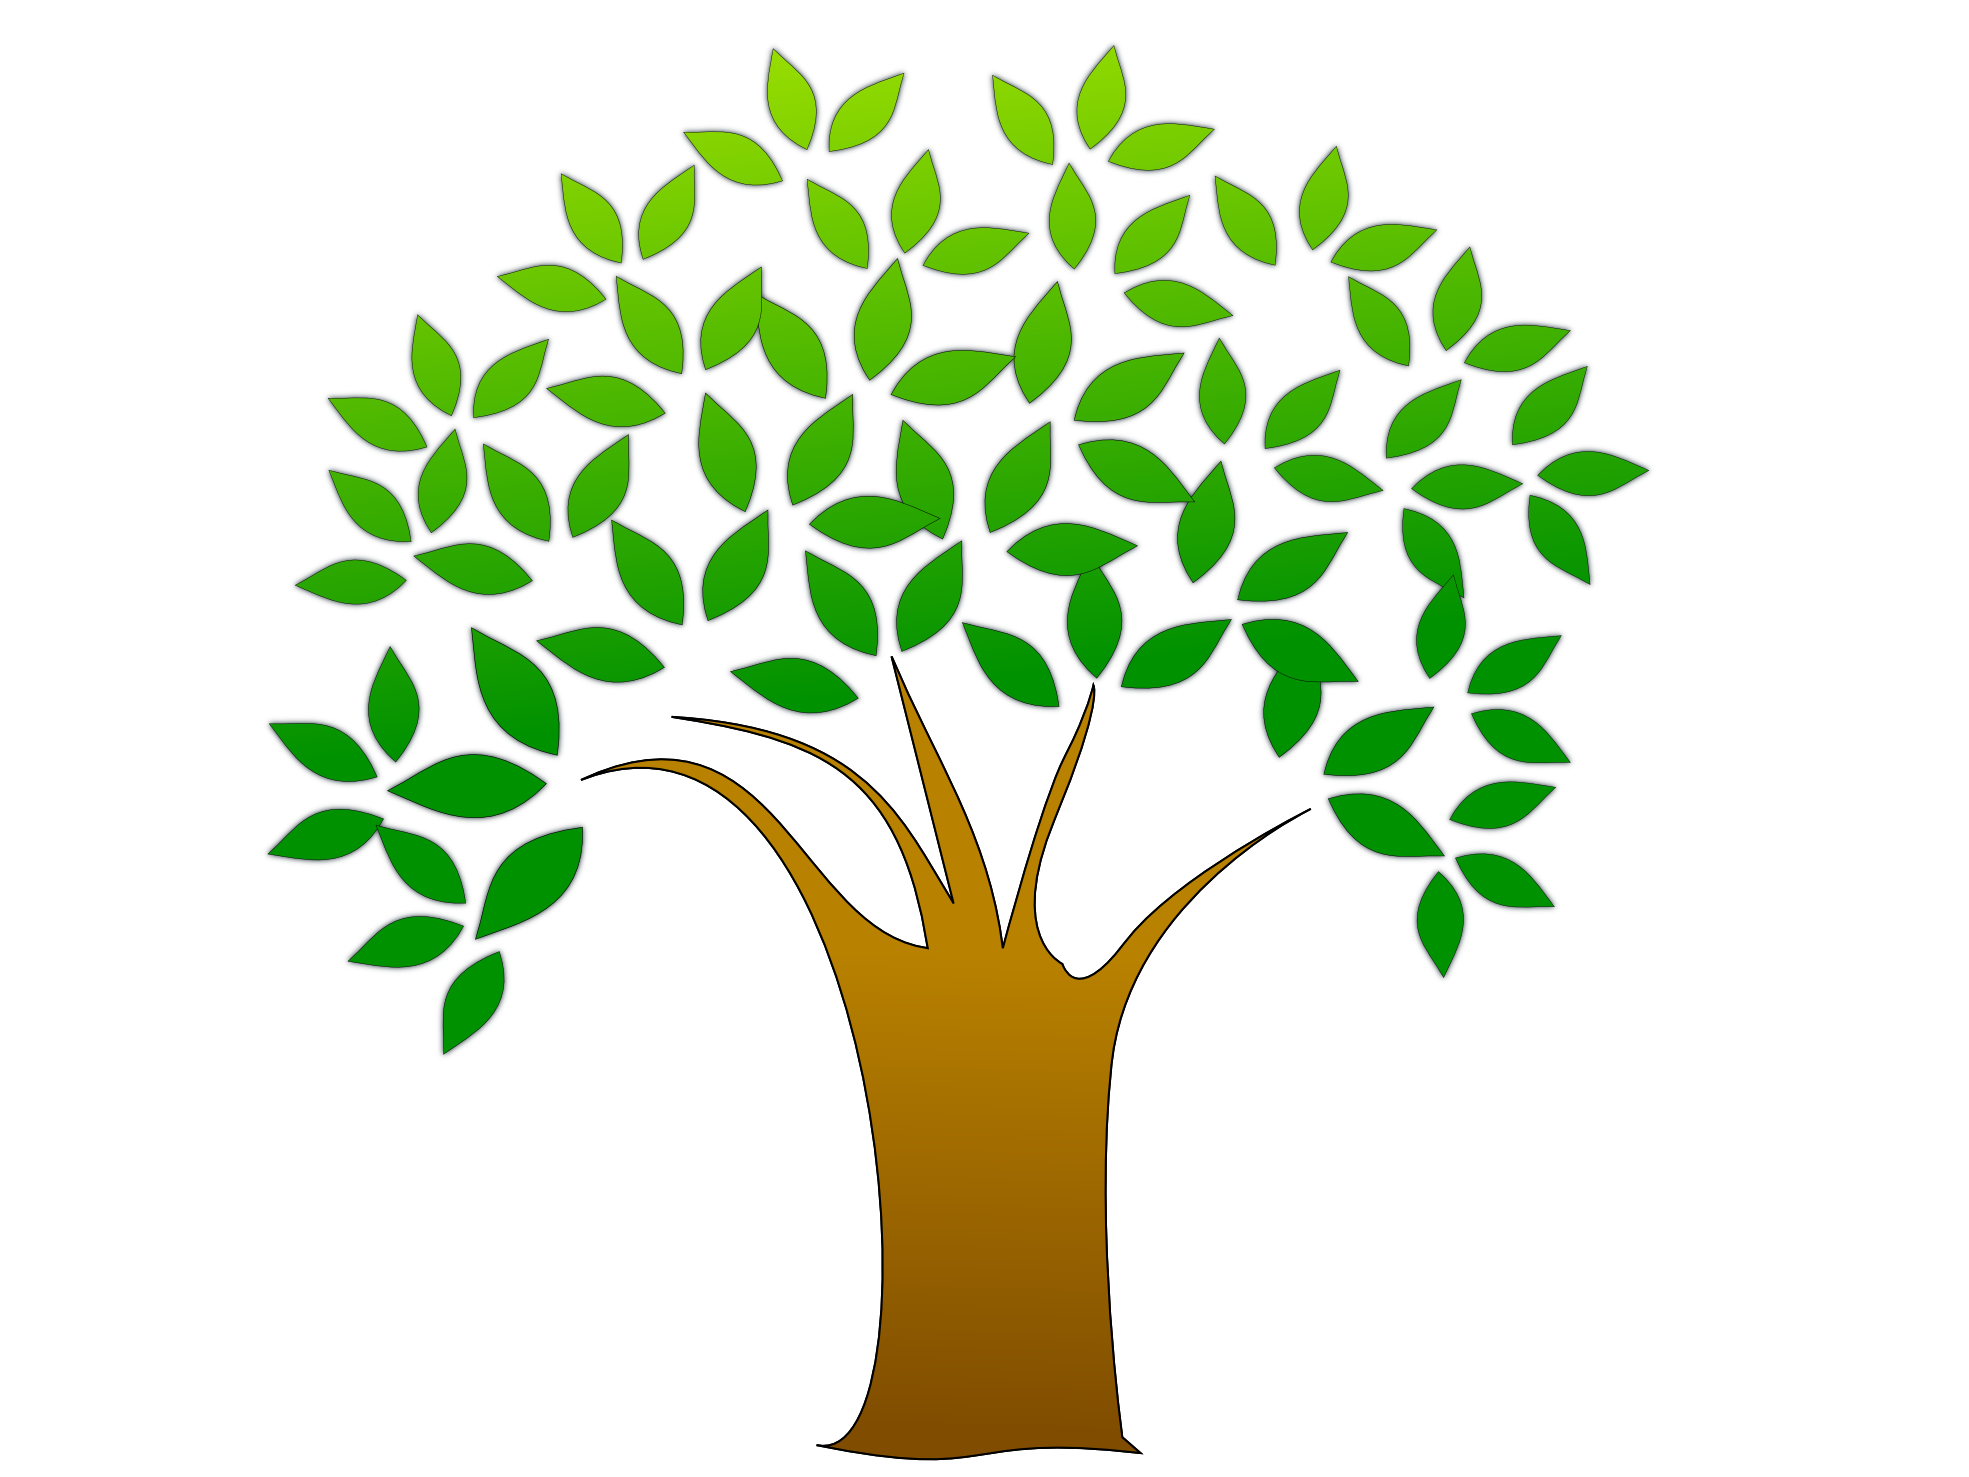 Tree Vector Image - Tree PNG Vector